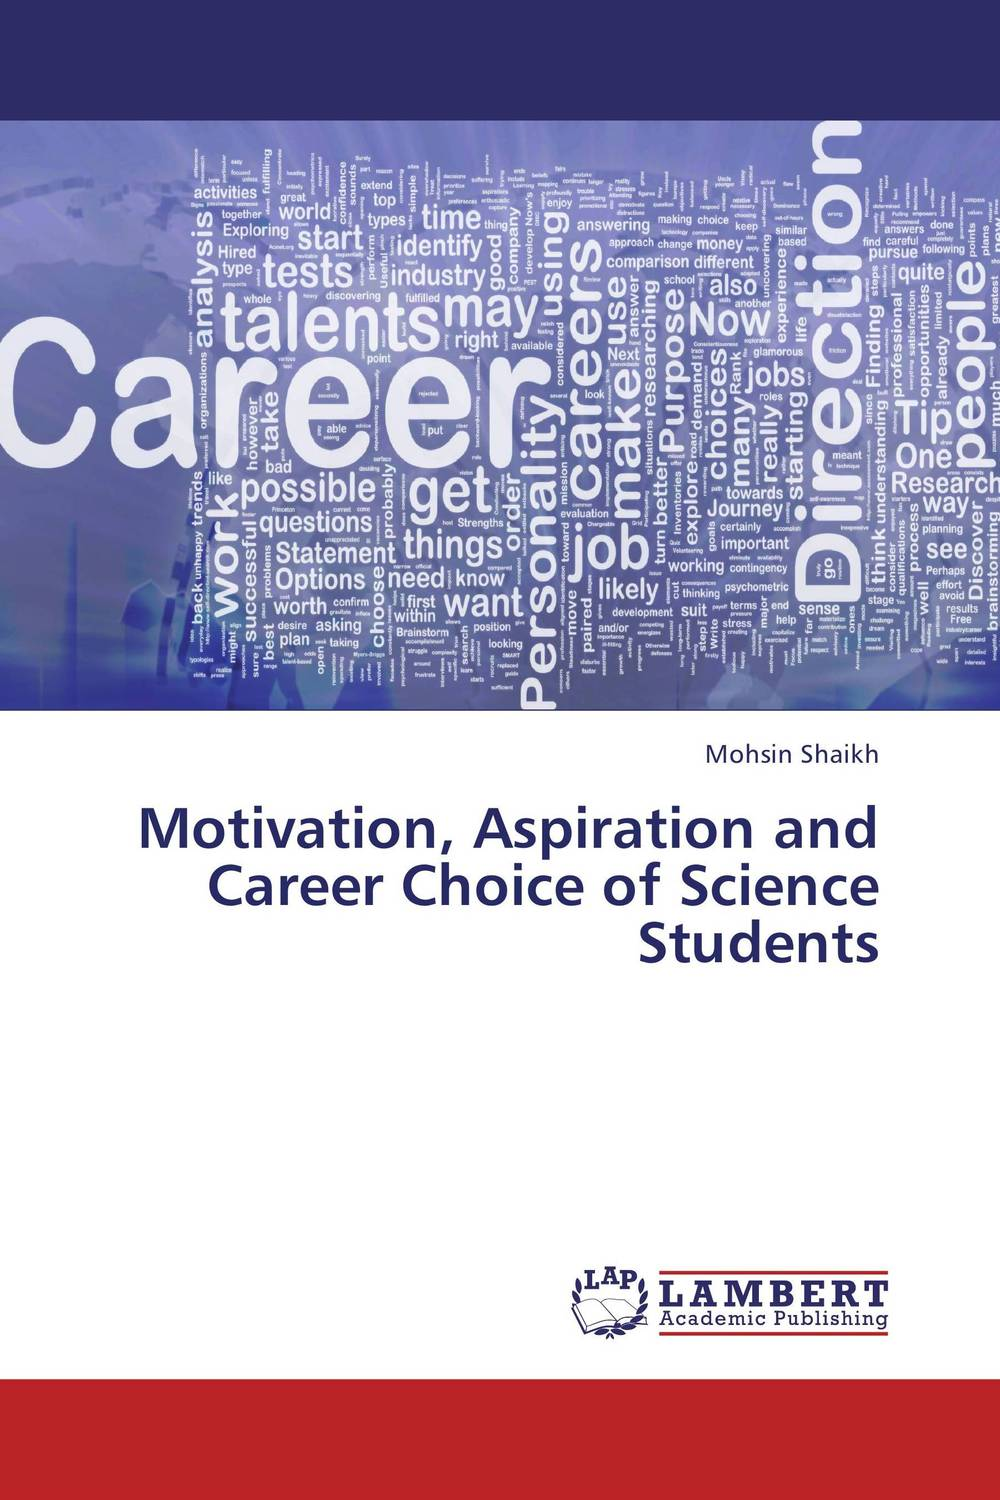 Motivation, Aspiration and Career Choice of Science Students abdullah alzahrani and hamid osman attitudes of medical students regarding fm as a career choice